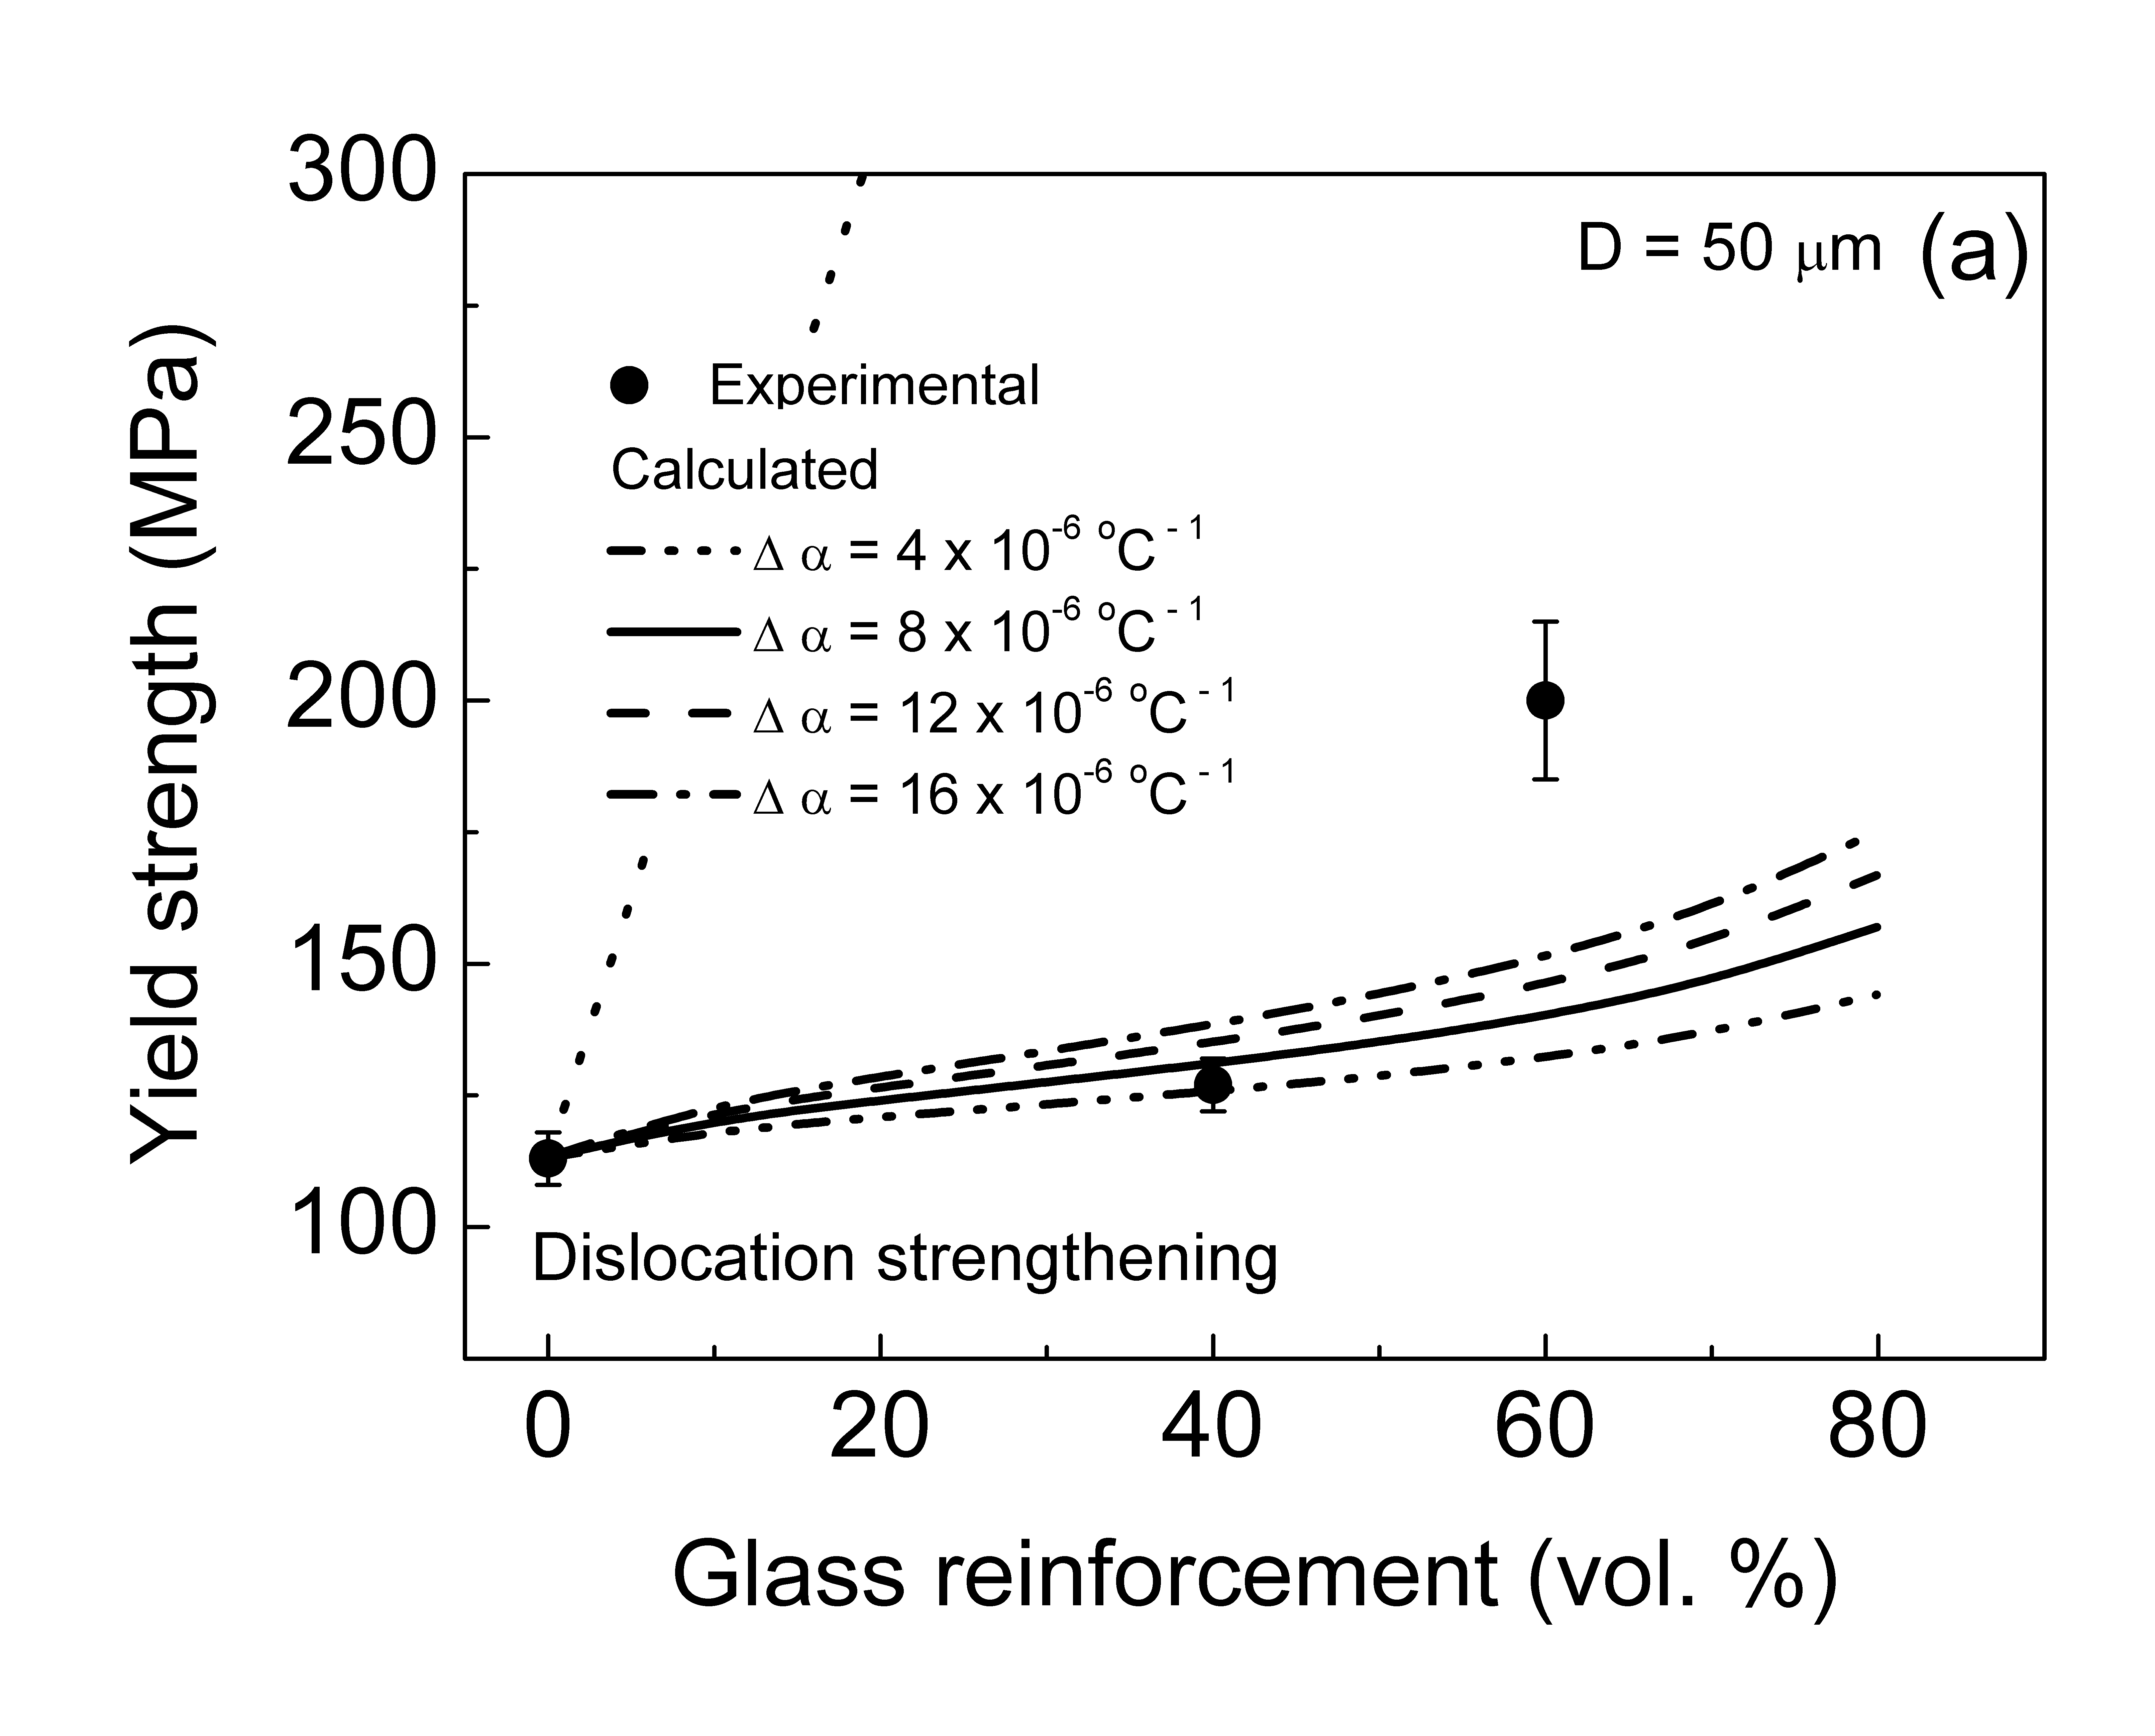 corrosion properties of al b4c composites Application data sheet: mechanical properties of copper and copper alloys at low temperatures tests — the compositions and condition of these alloys — that is, for standard, commercially available mill stock — are listed in table 1 tensile specimens with 15 inch gauge lengths provided.